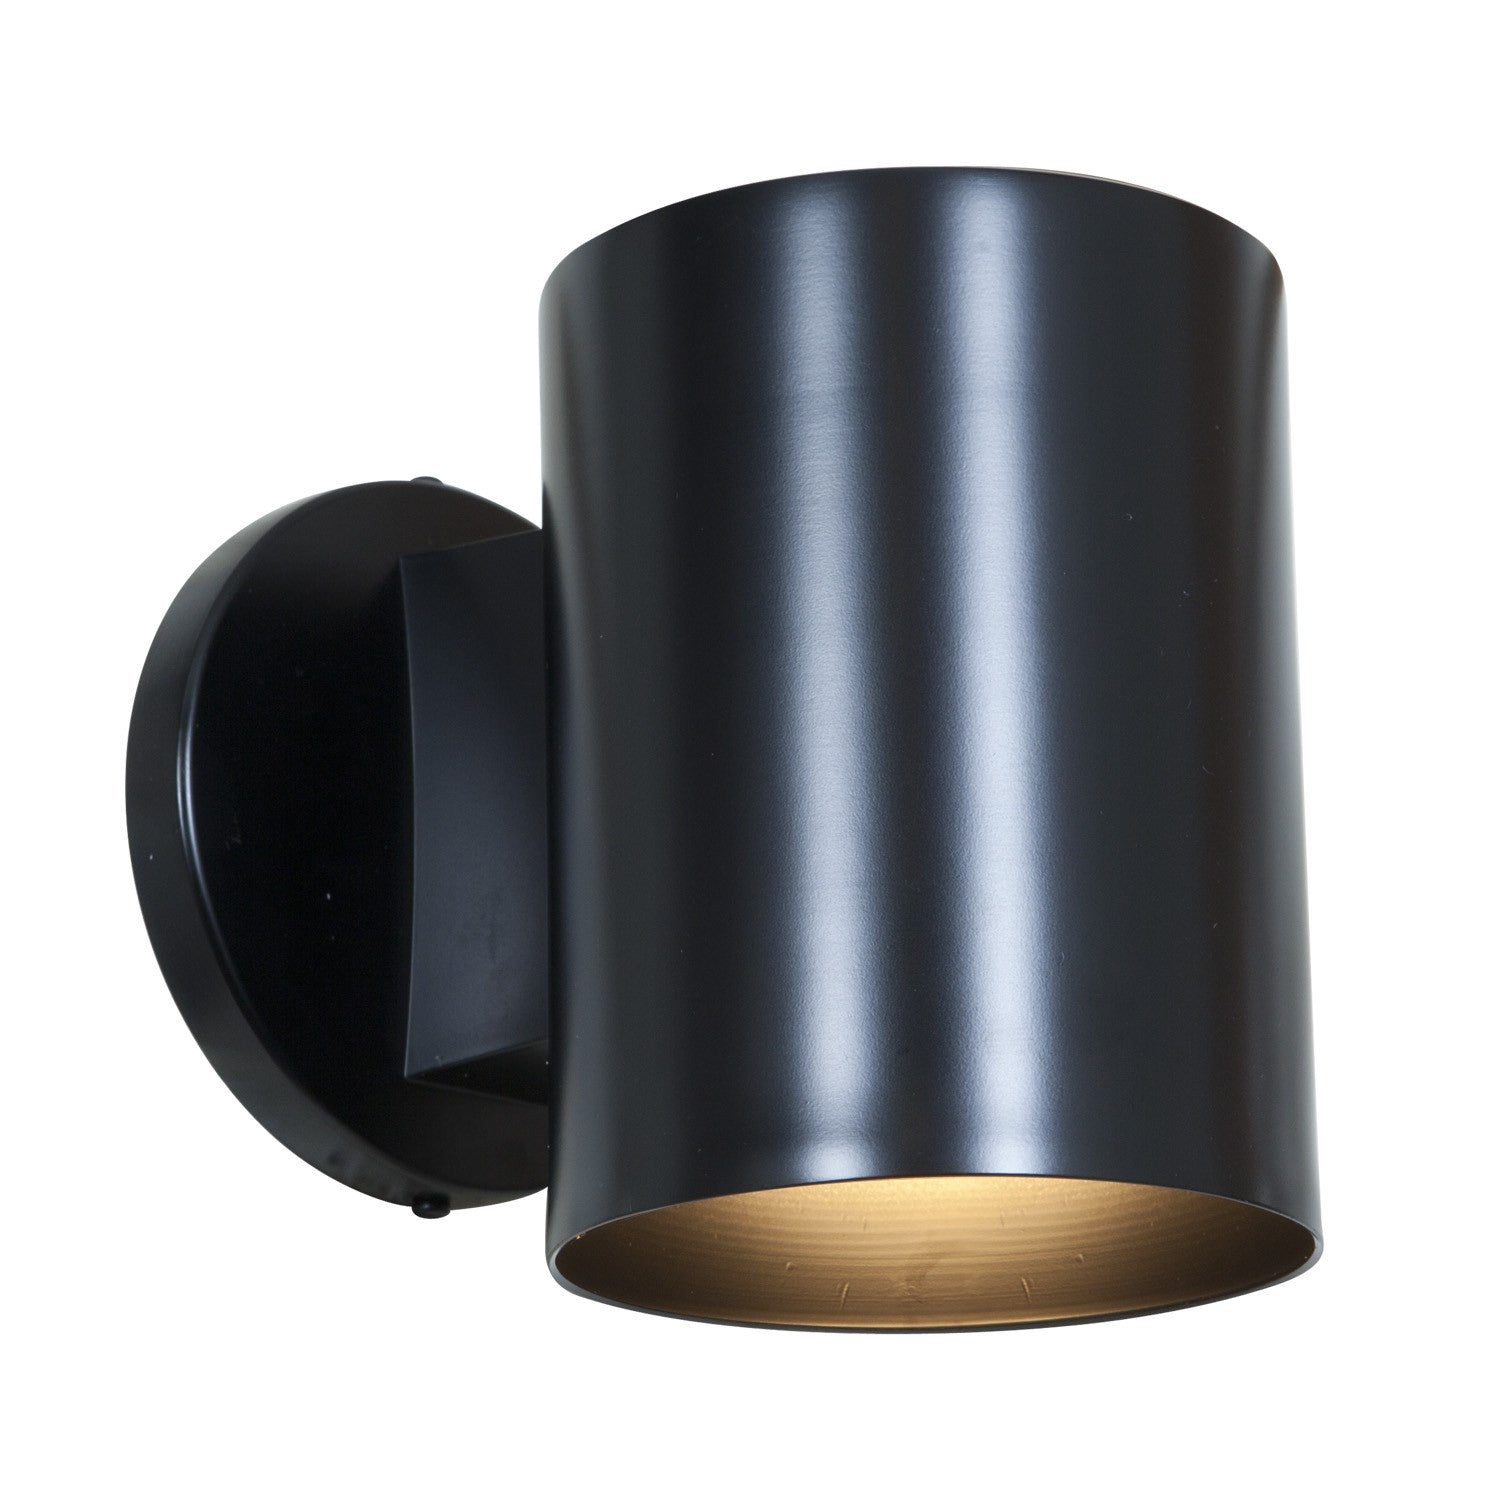 Access Lighting 20363 BL SPECIAL ORDER One Light Exterior Outdoor Wall Mount in Black Finish